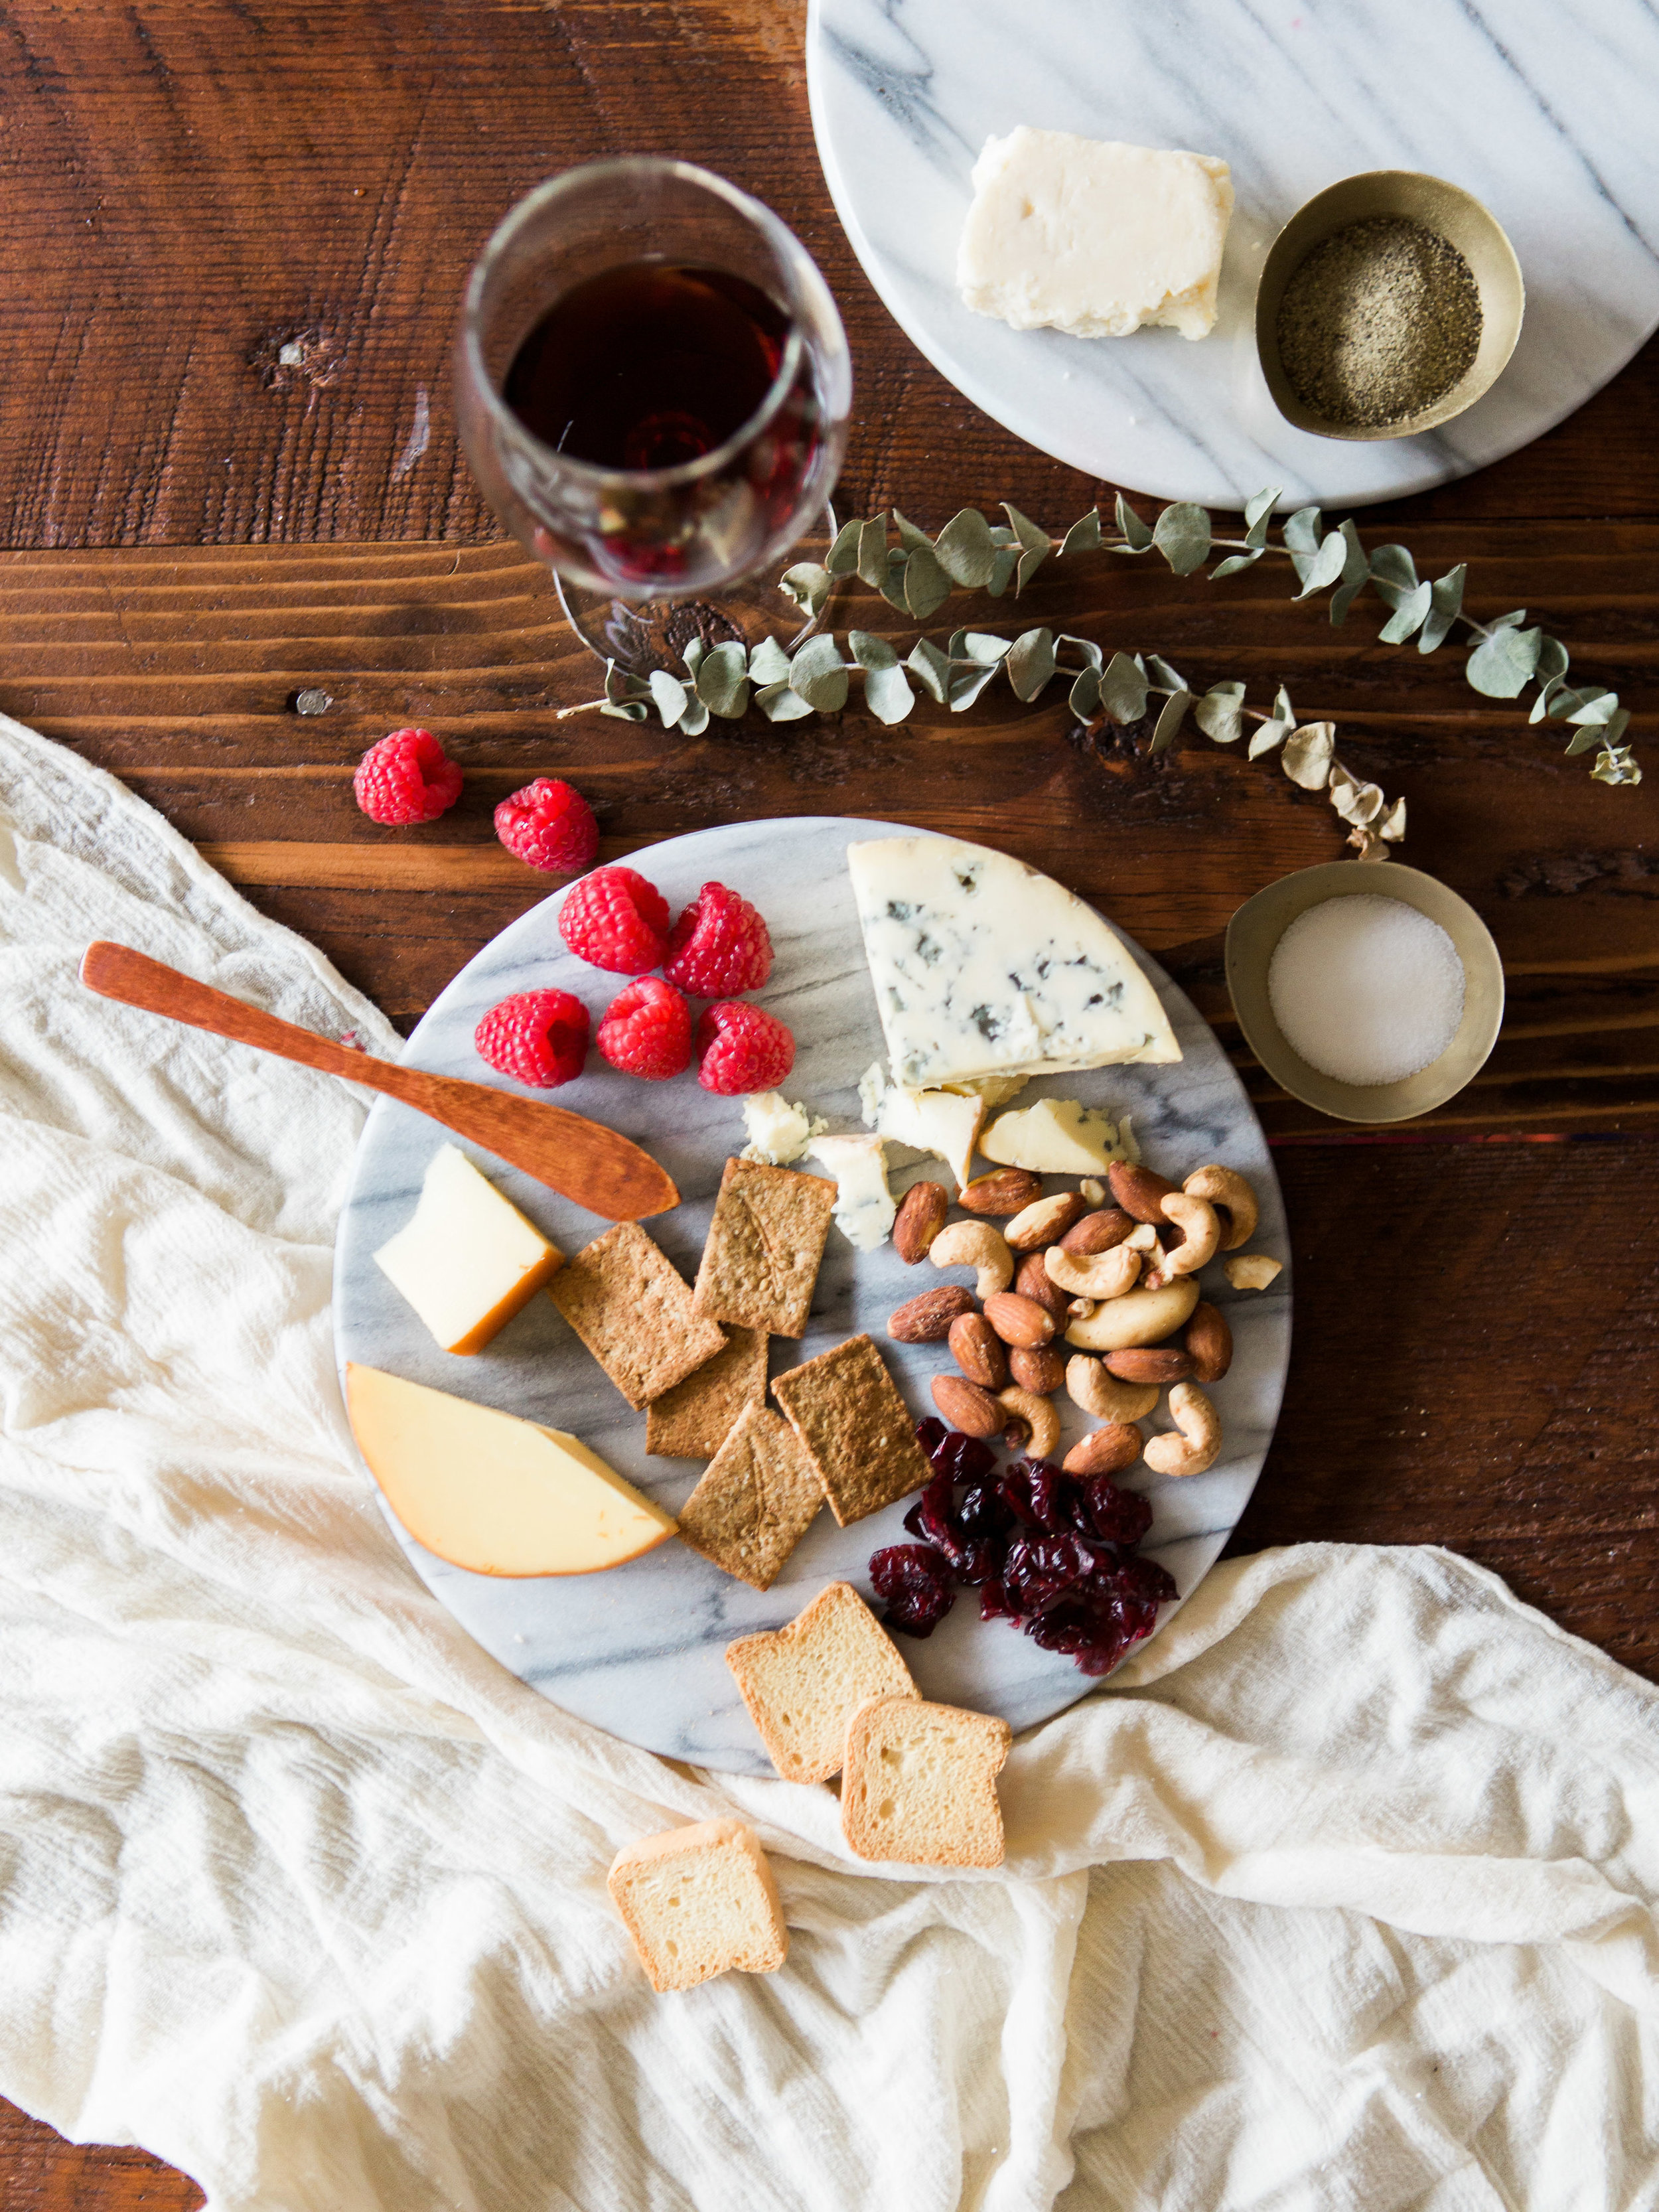 simple cheese board ideas for hosted dinner party from livingforaged.com